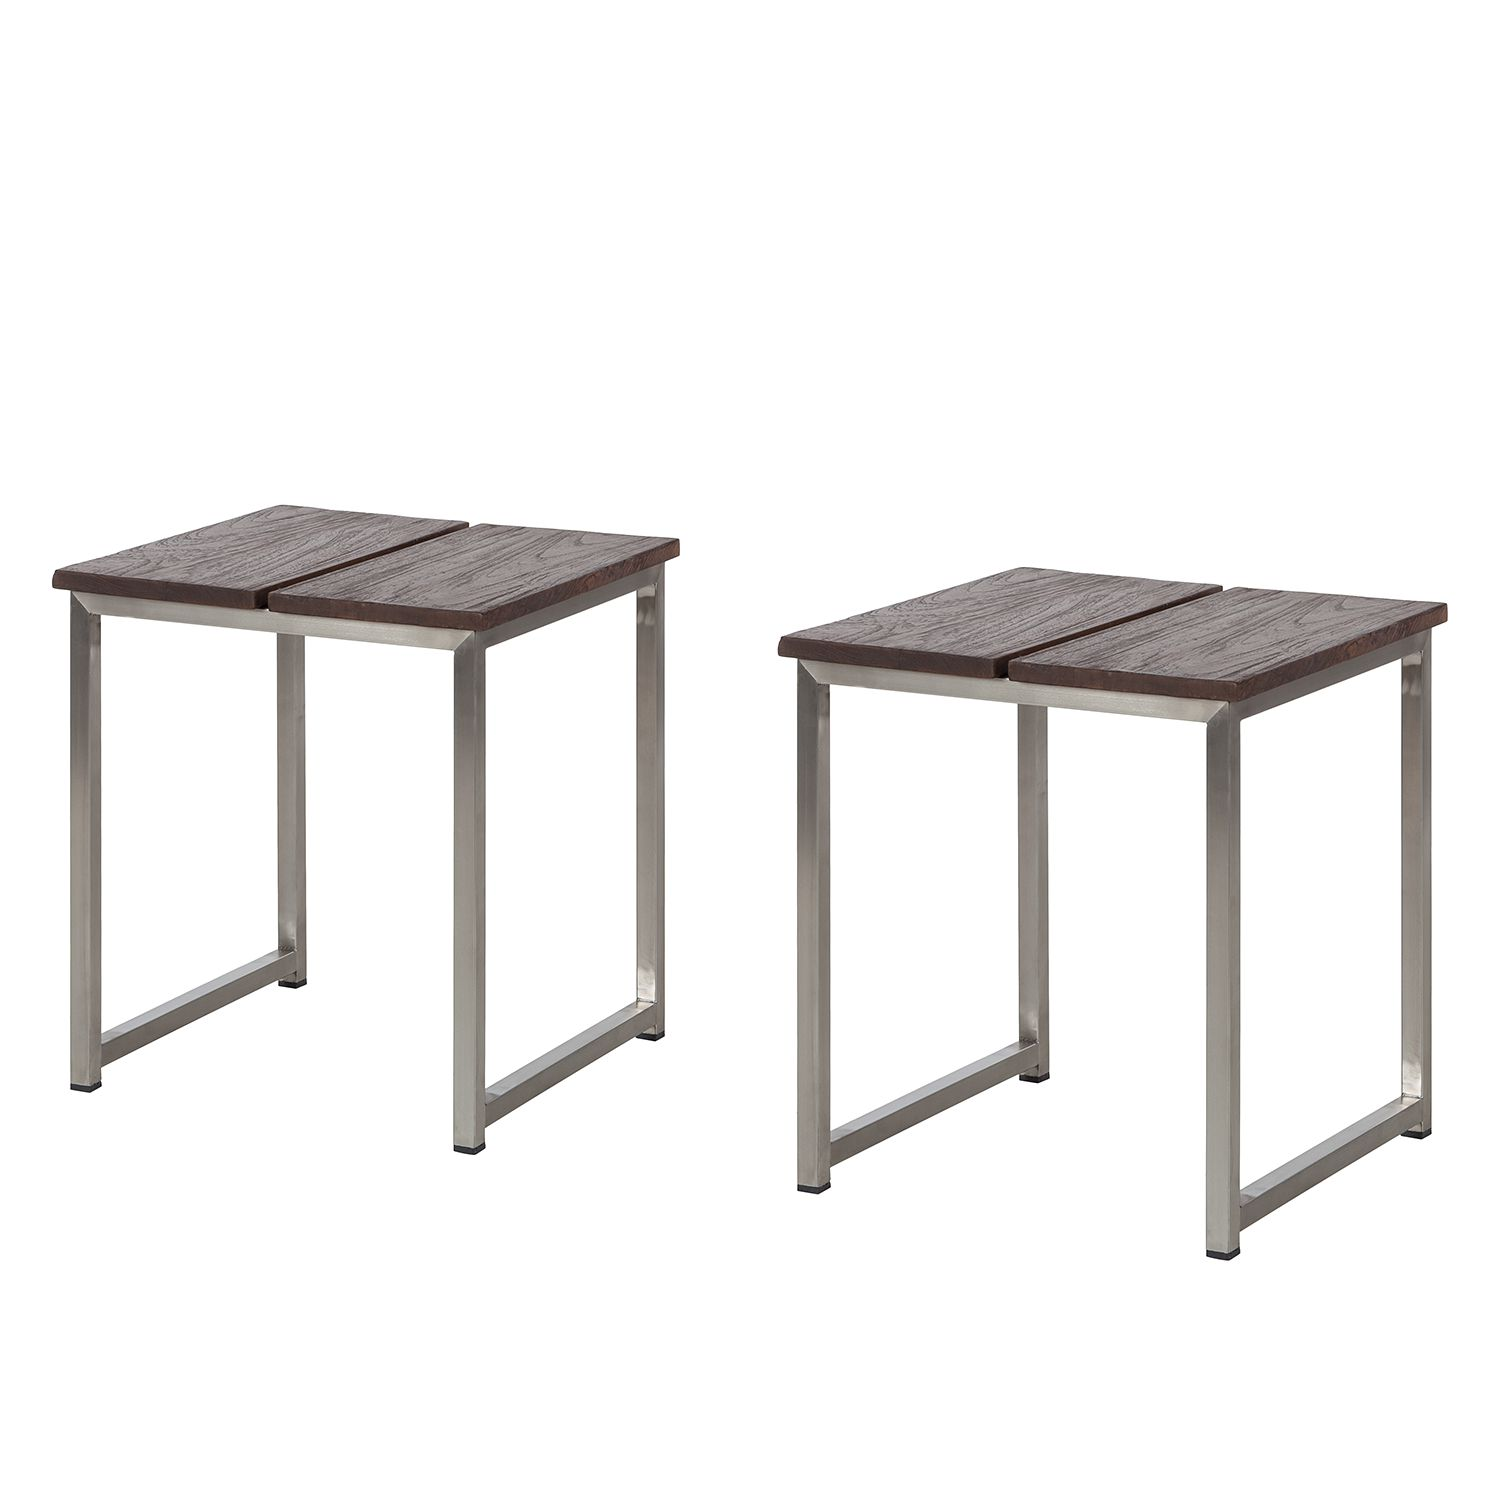 Hocker Concept Neo Antique (2er-Set) - Teakholz massiv / Edelstahl, Kings Garden